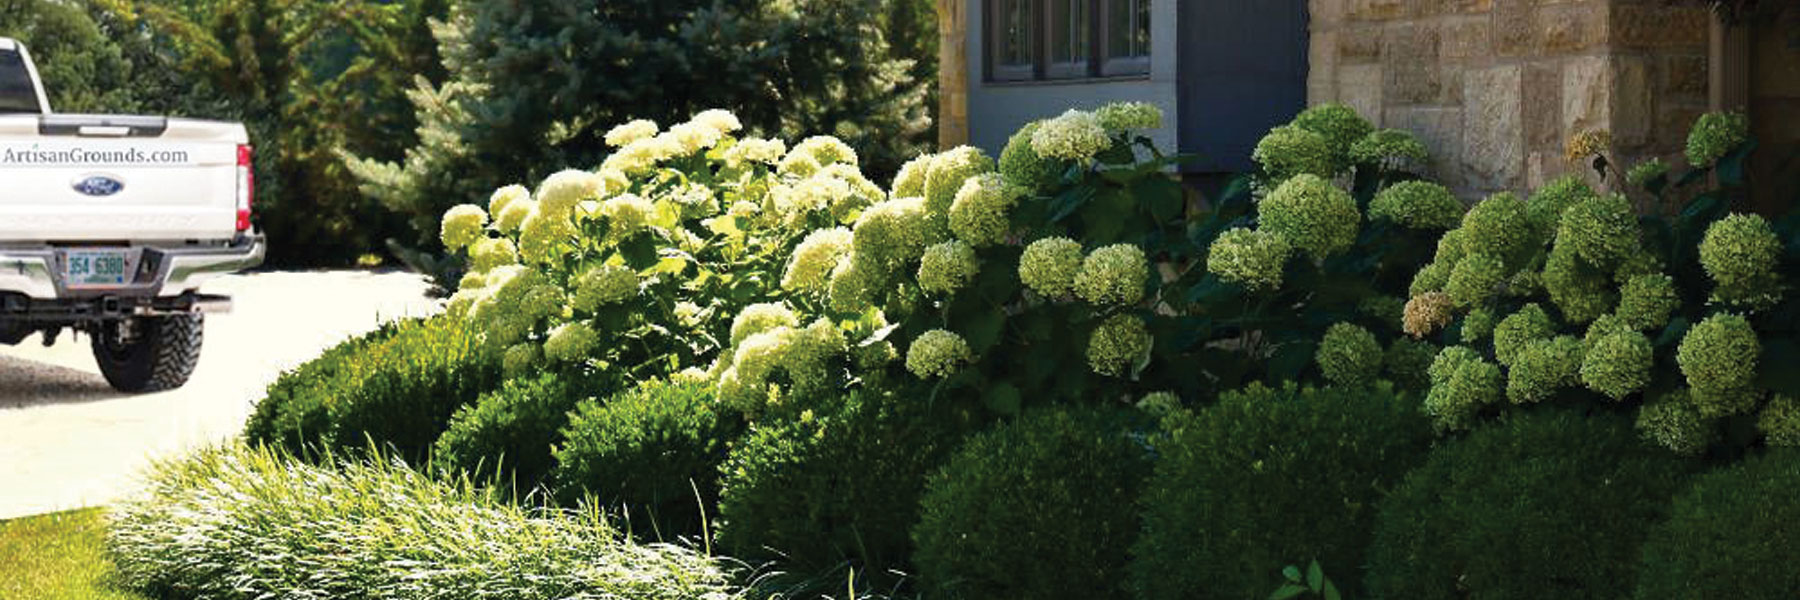 Gardens & Softscapes - Design and Care your property deserves